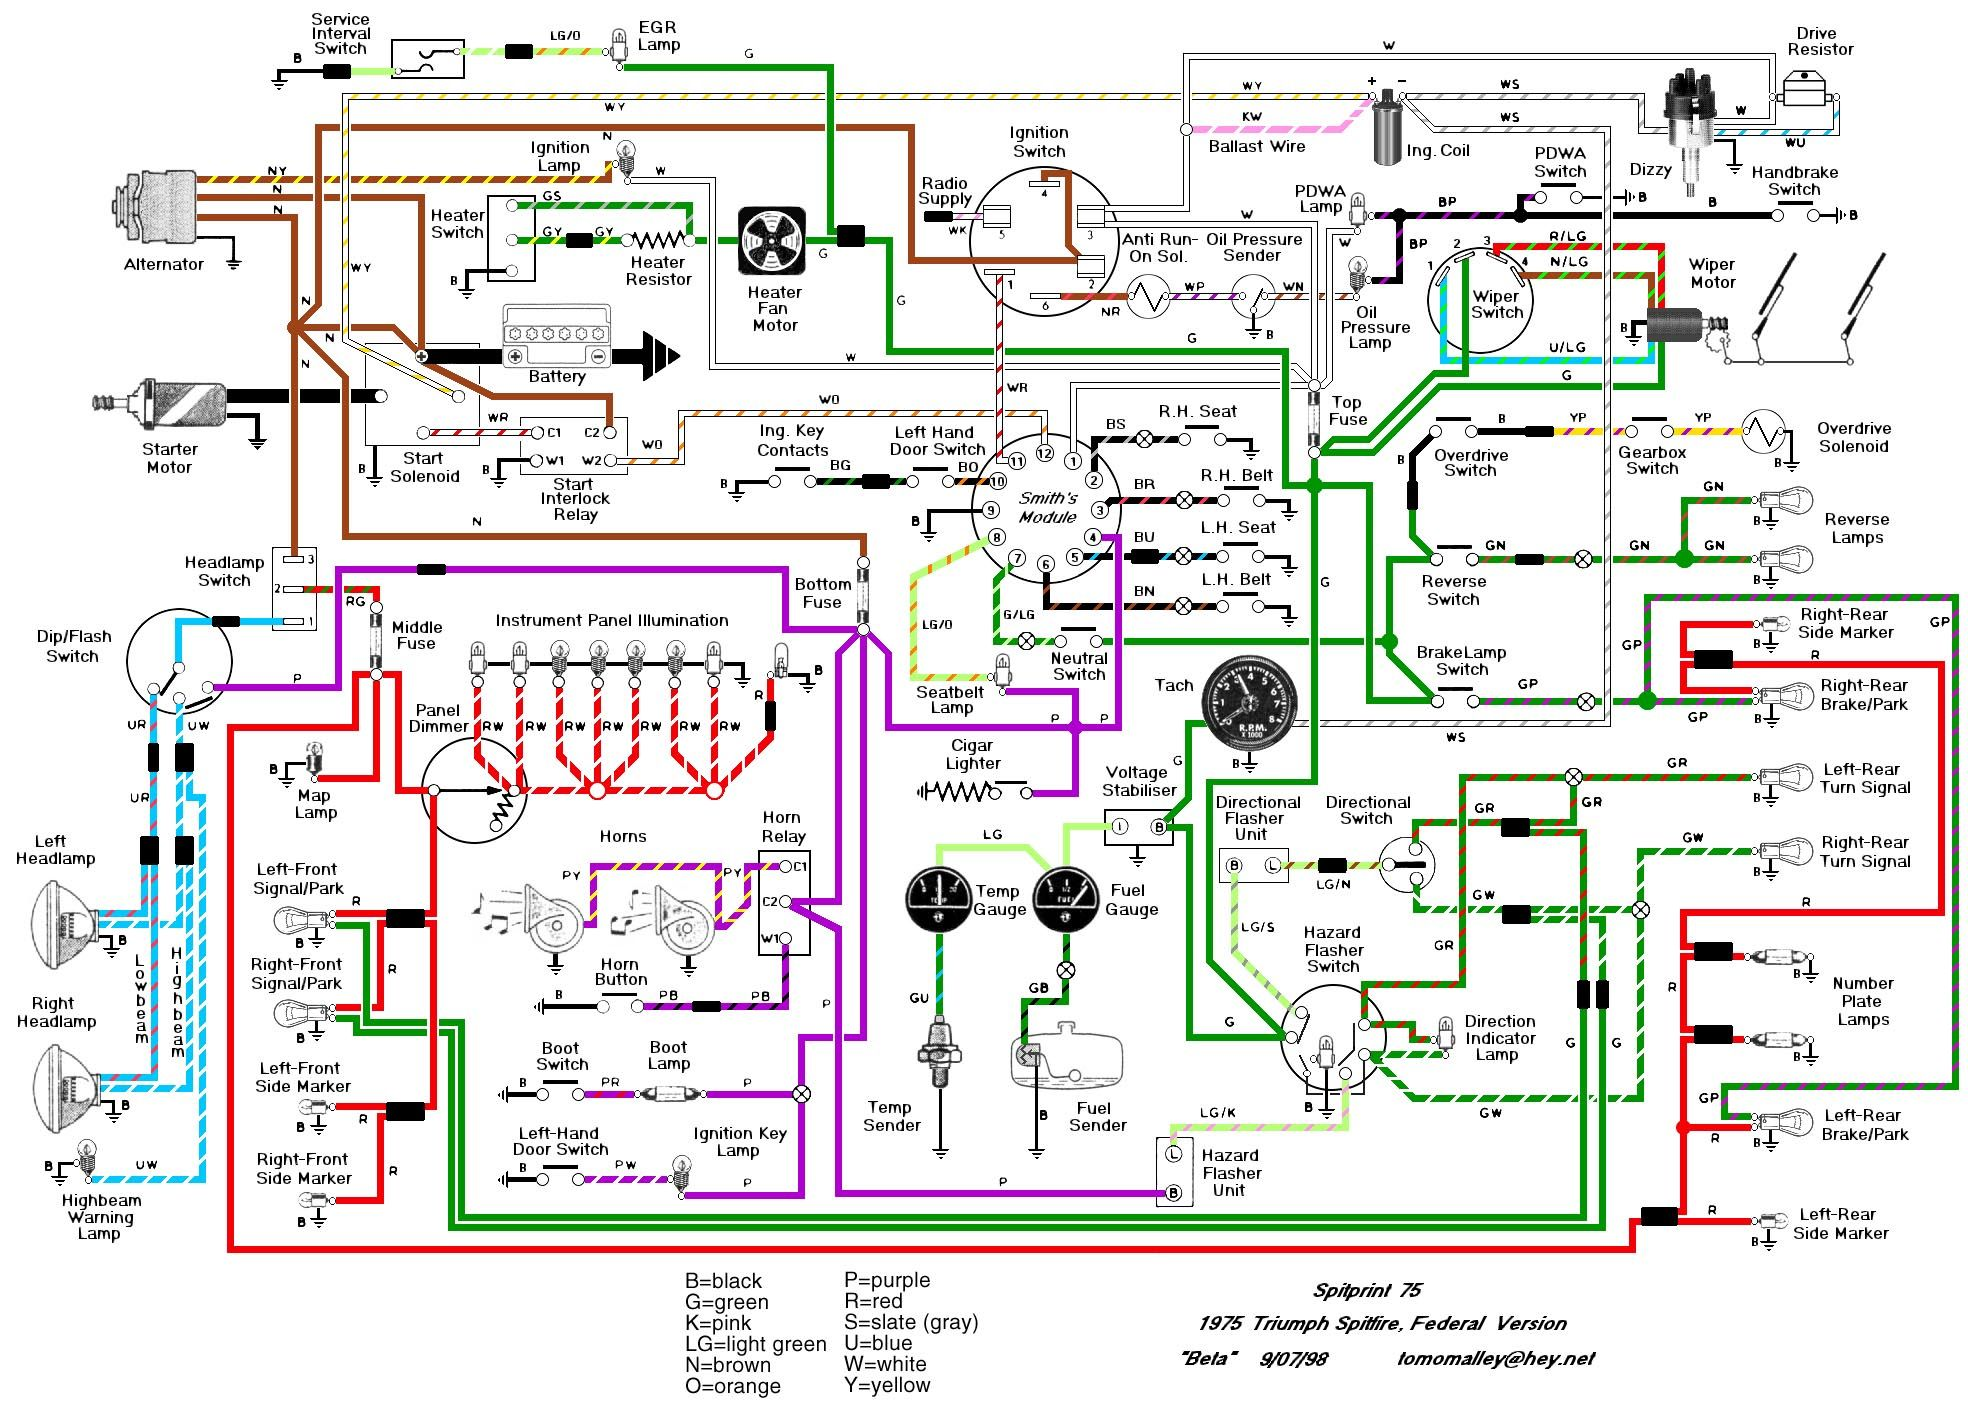 Auto Wiring Diagrams: 10+ images about auto manual parts wiring diagram on Pinterest    ,